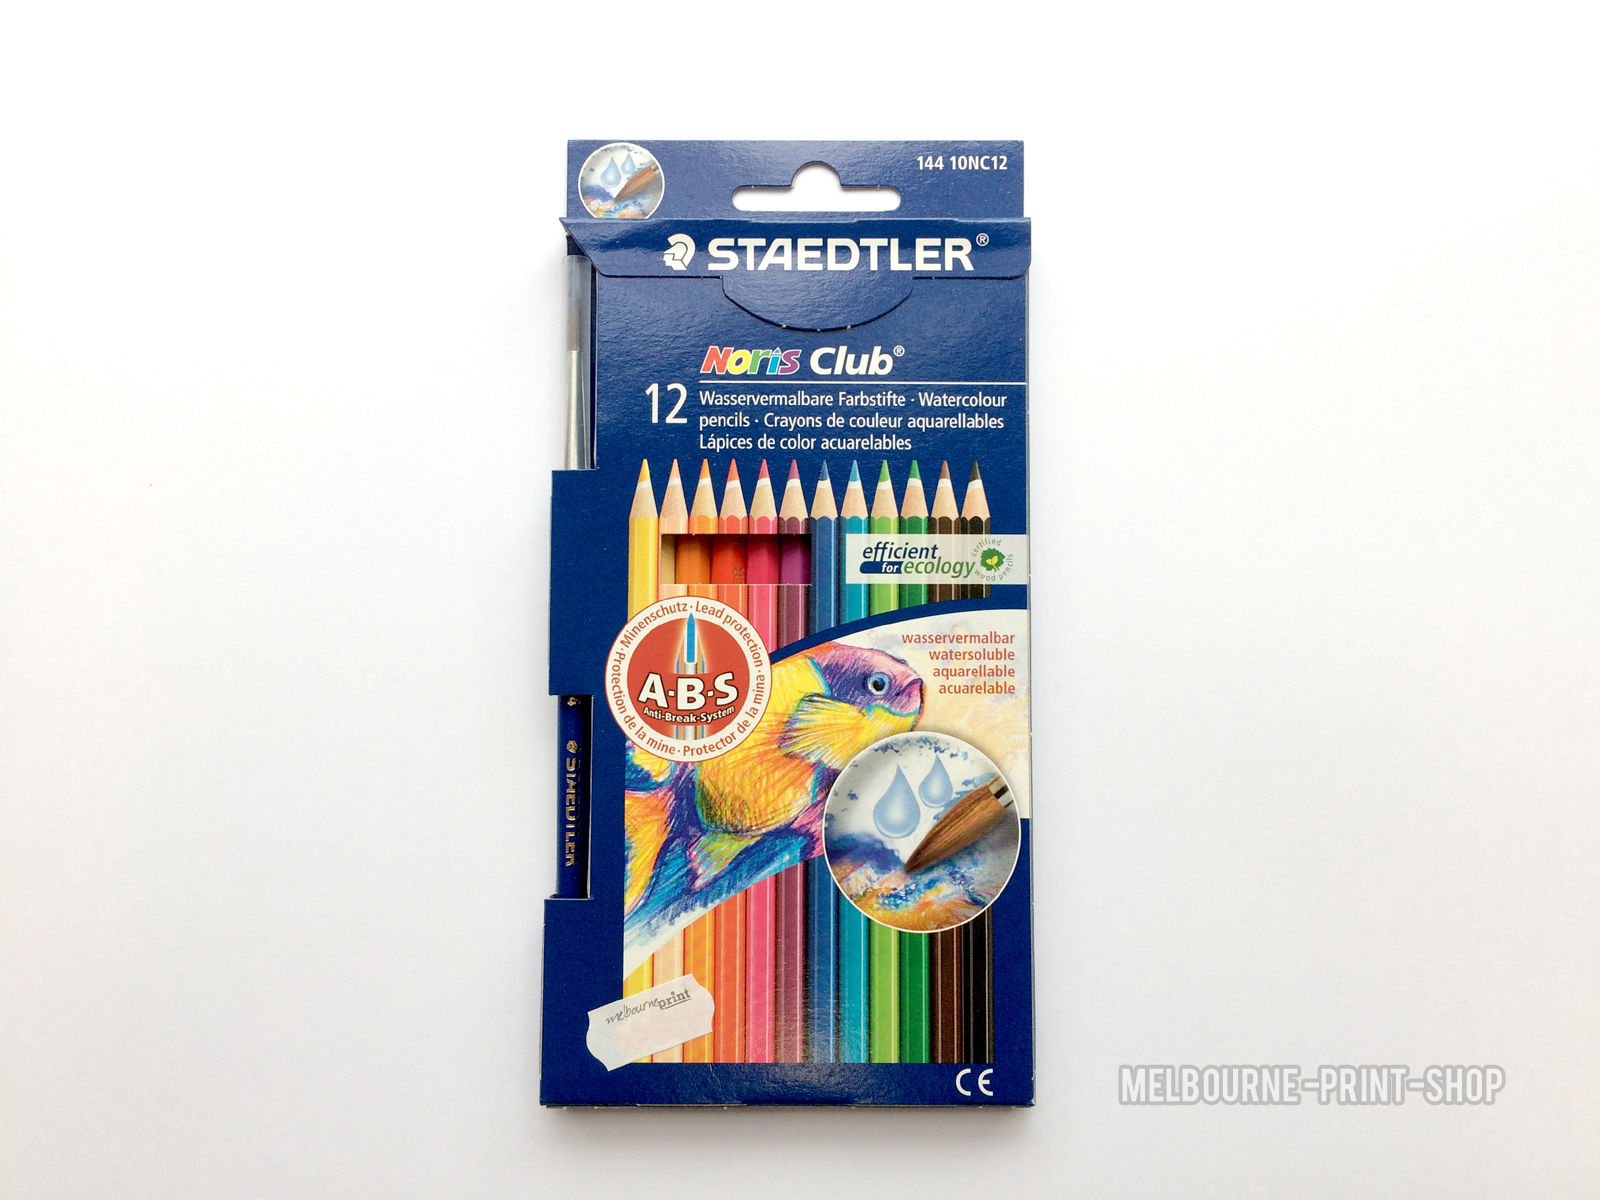 Staedtler-Noris-Club-Aquarell-Watercolour